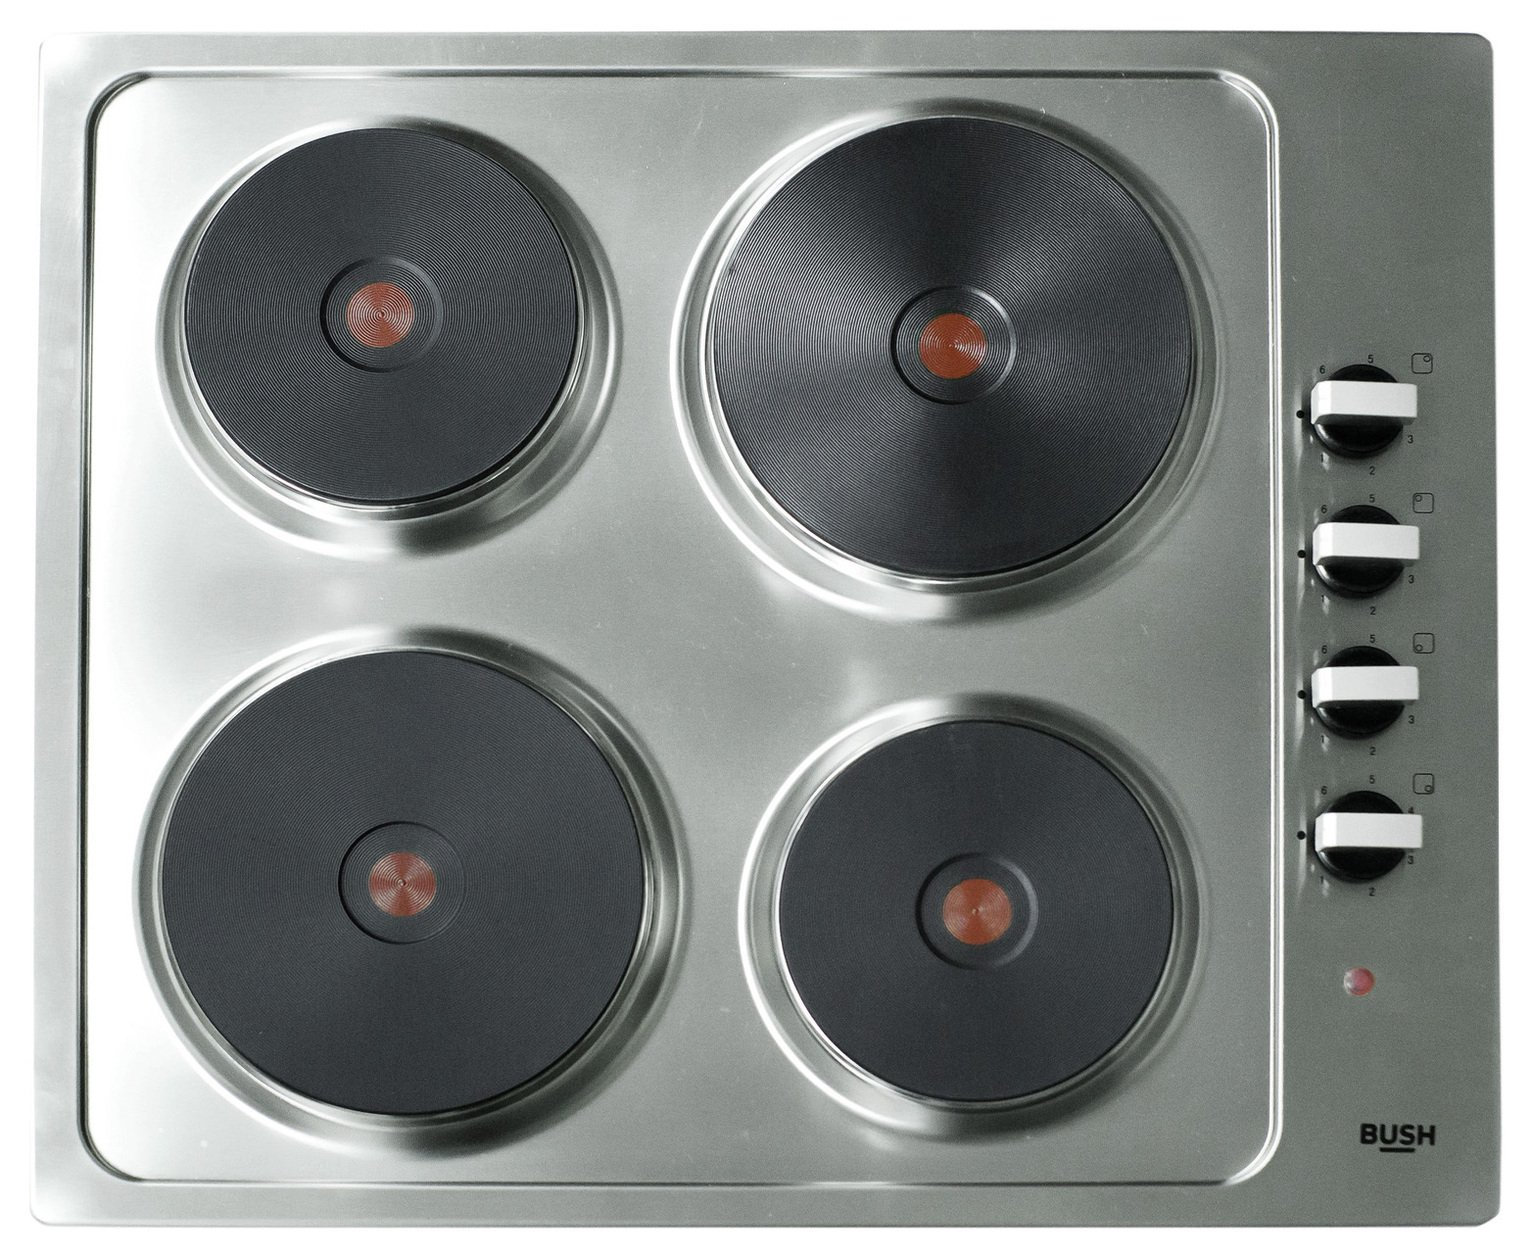 Bush RL60SPH Electric Solid Plate Hob - Stainless Steel